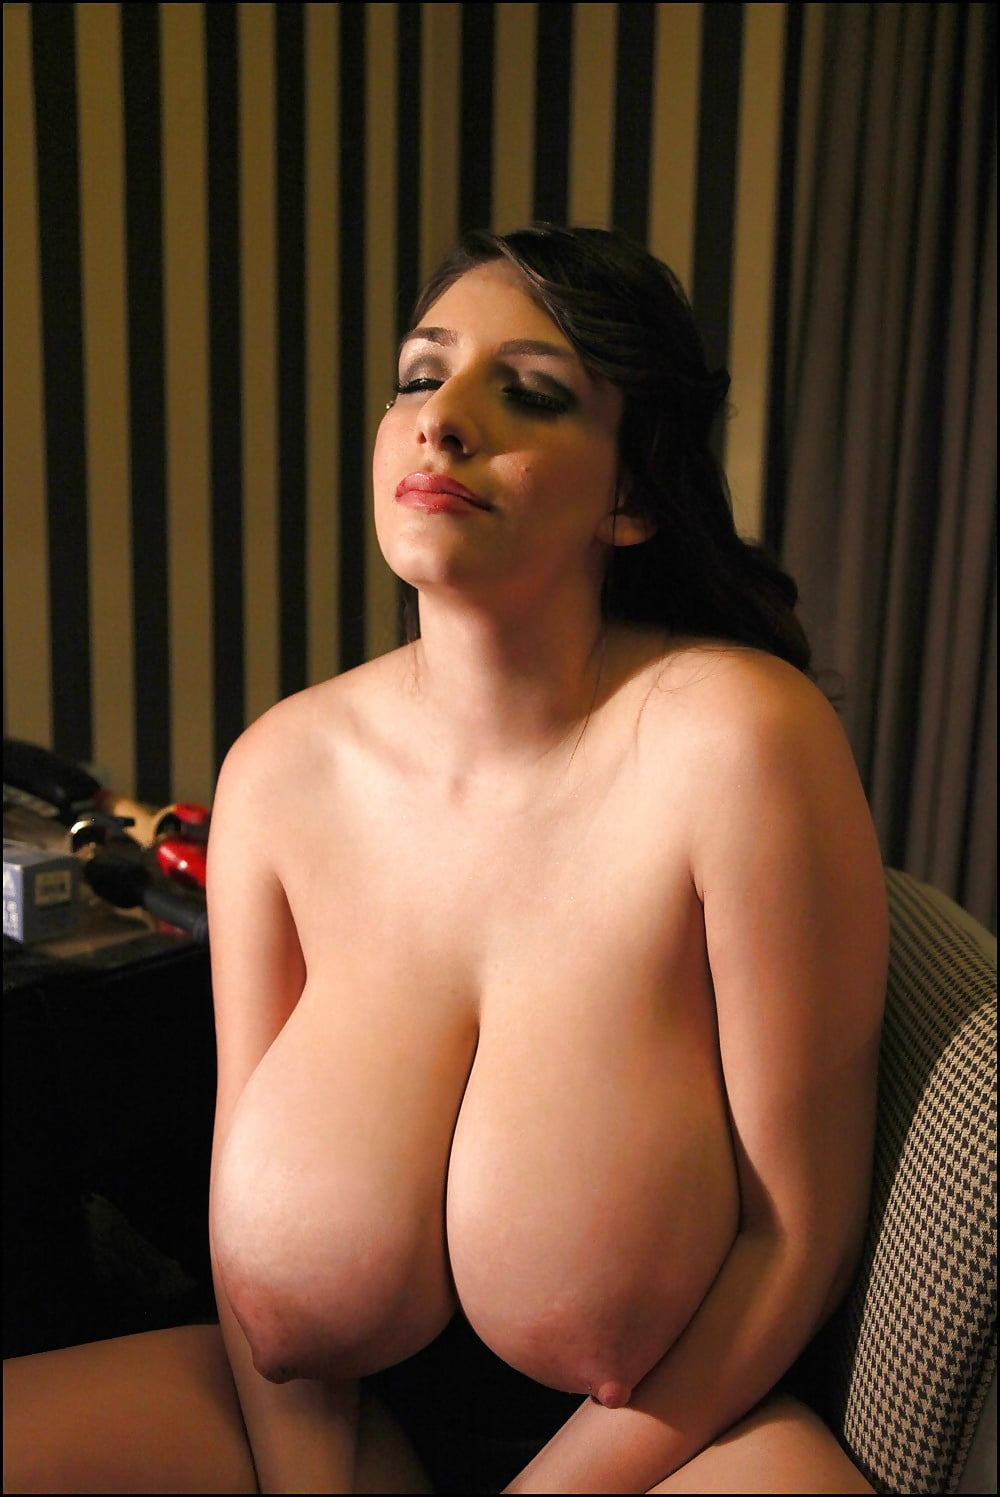 Super busty glamour profiles, doing girl vids